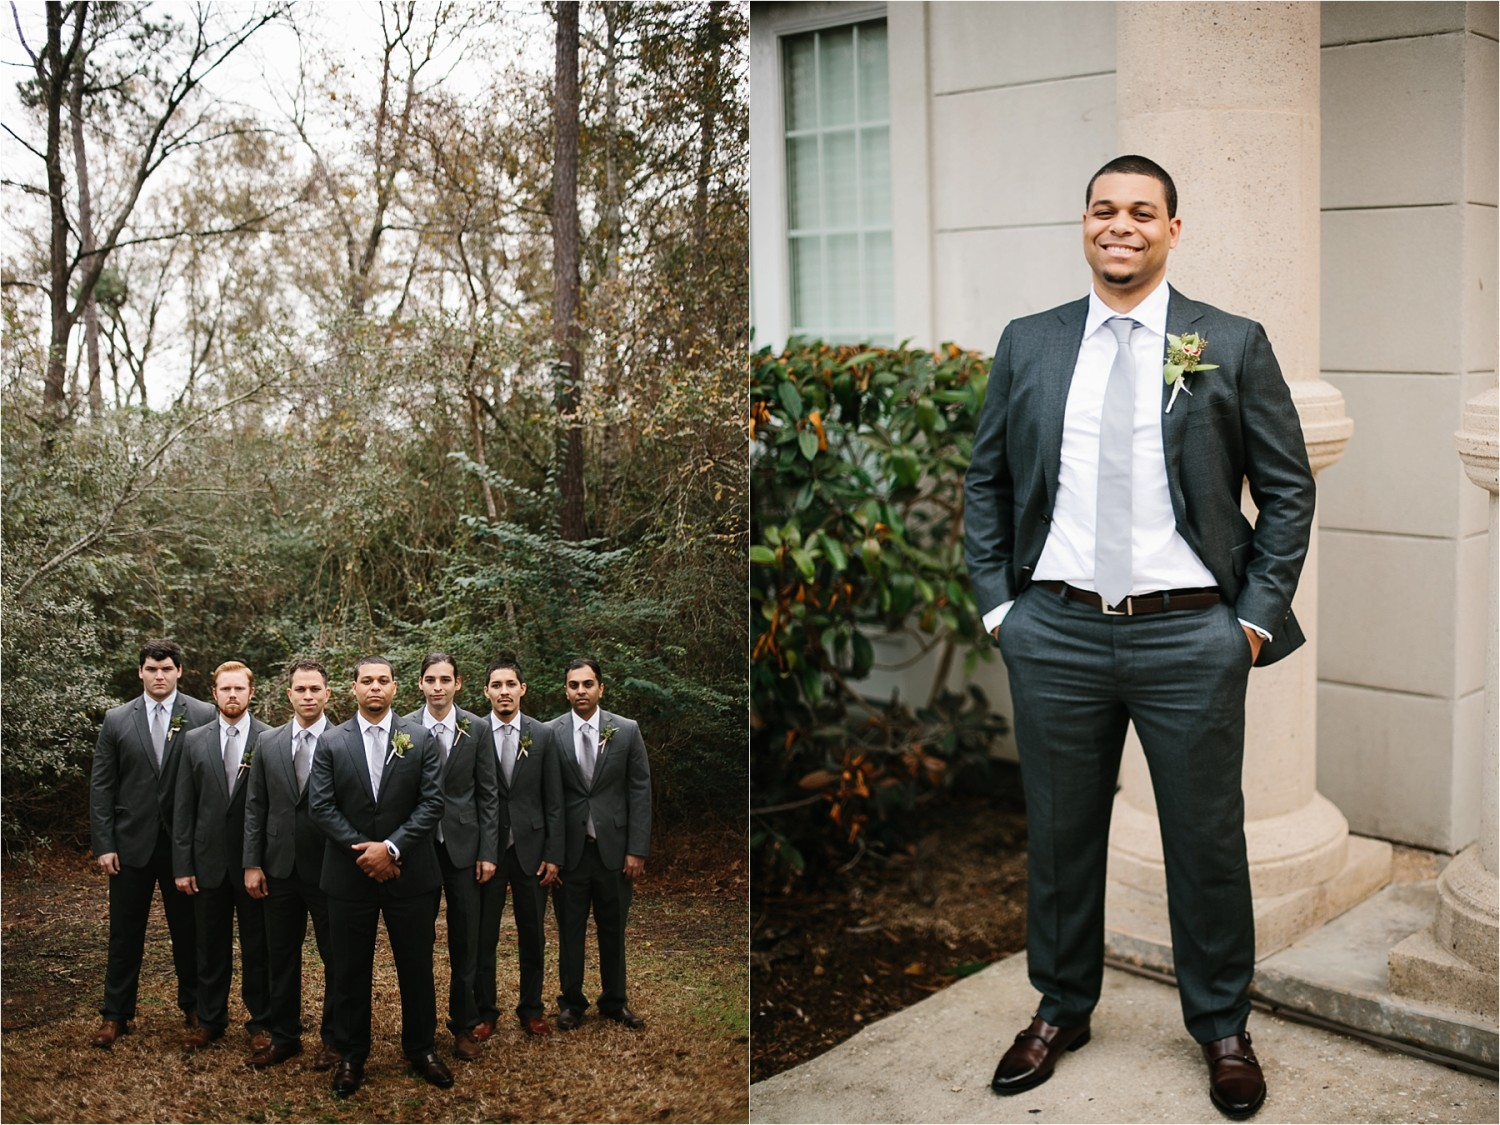 Jeanpaul + Ann __ a colorful wedding at Ashton Gardens in Houston TX by North Texas Wedding Photographer Rachel Meagan Photography _ 10